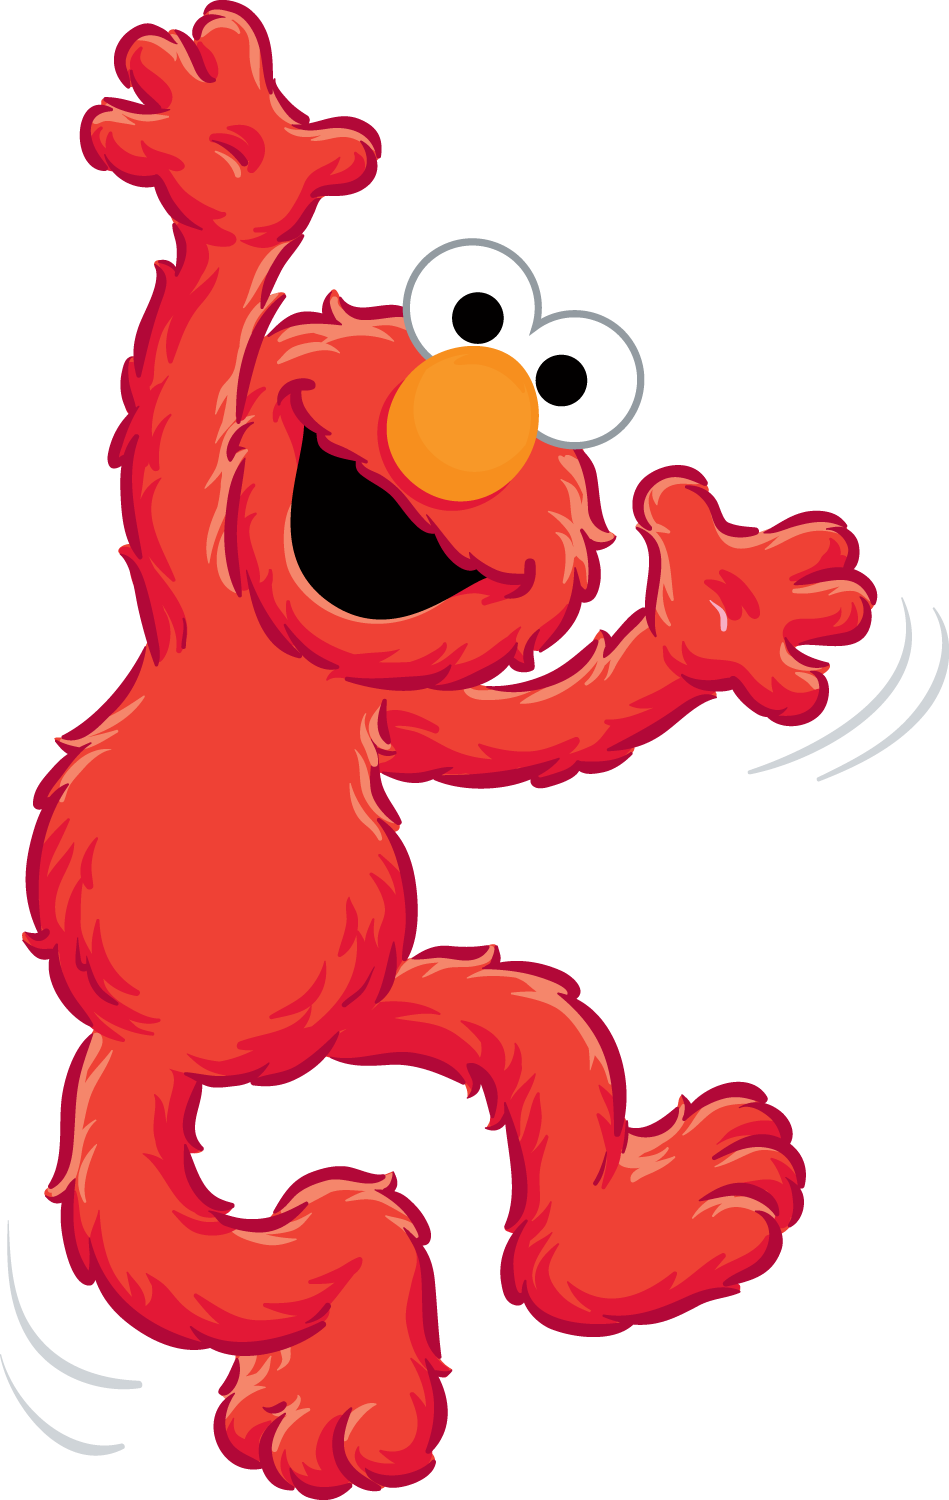 elmo clipart eye